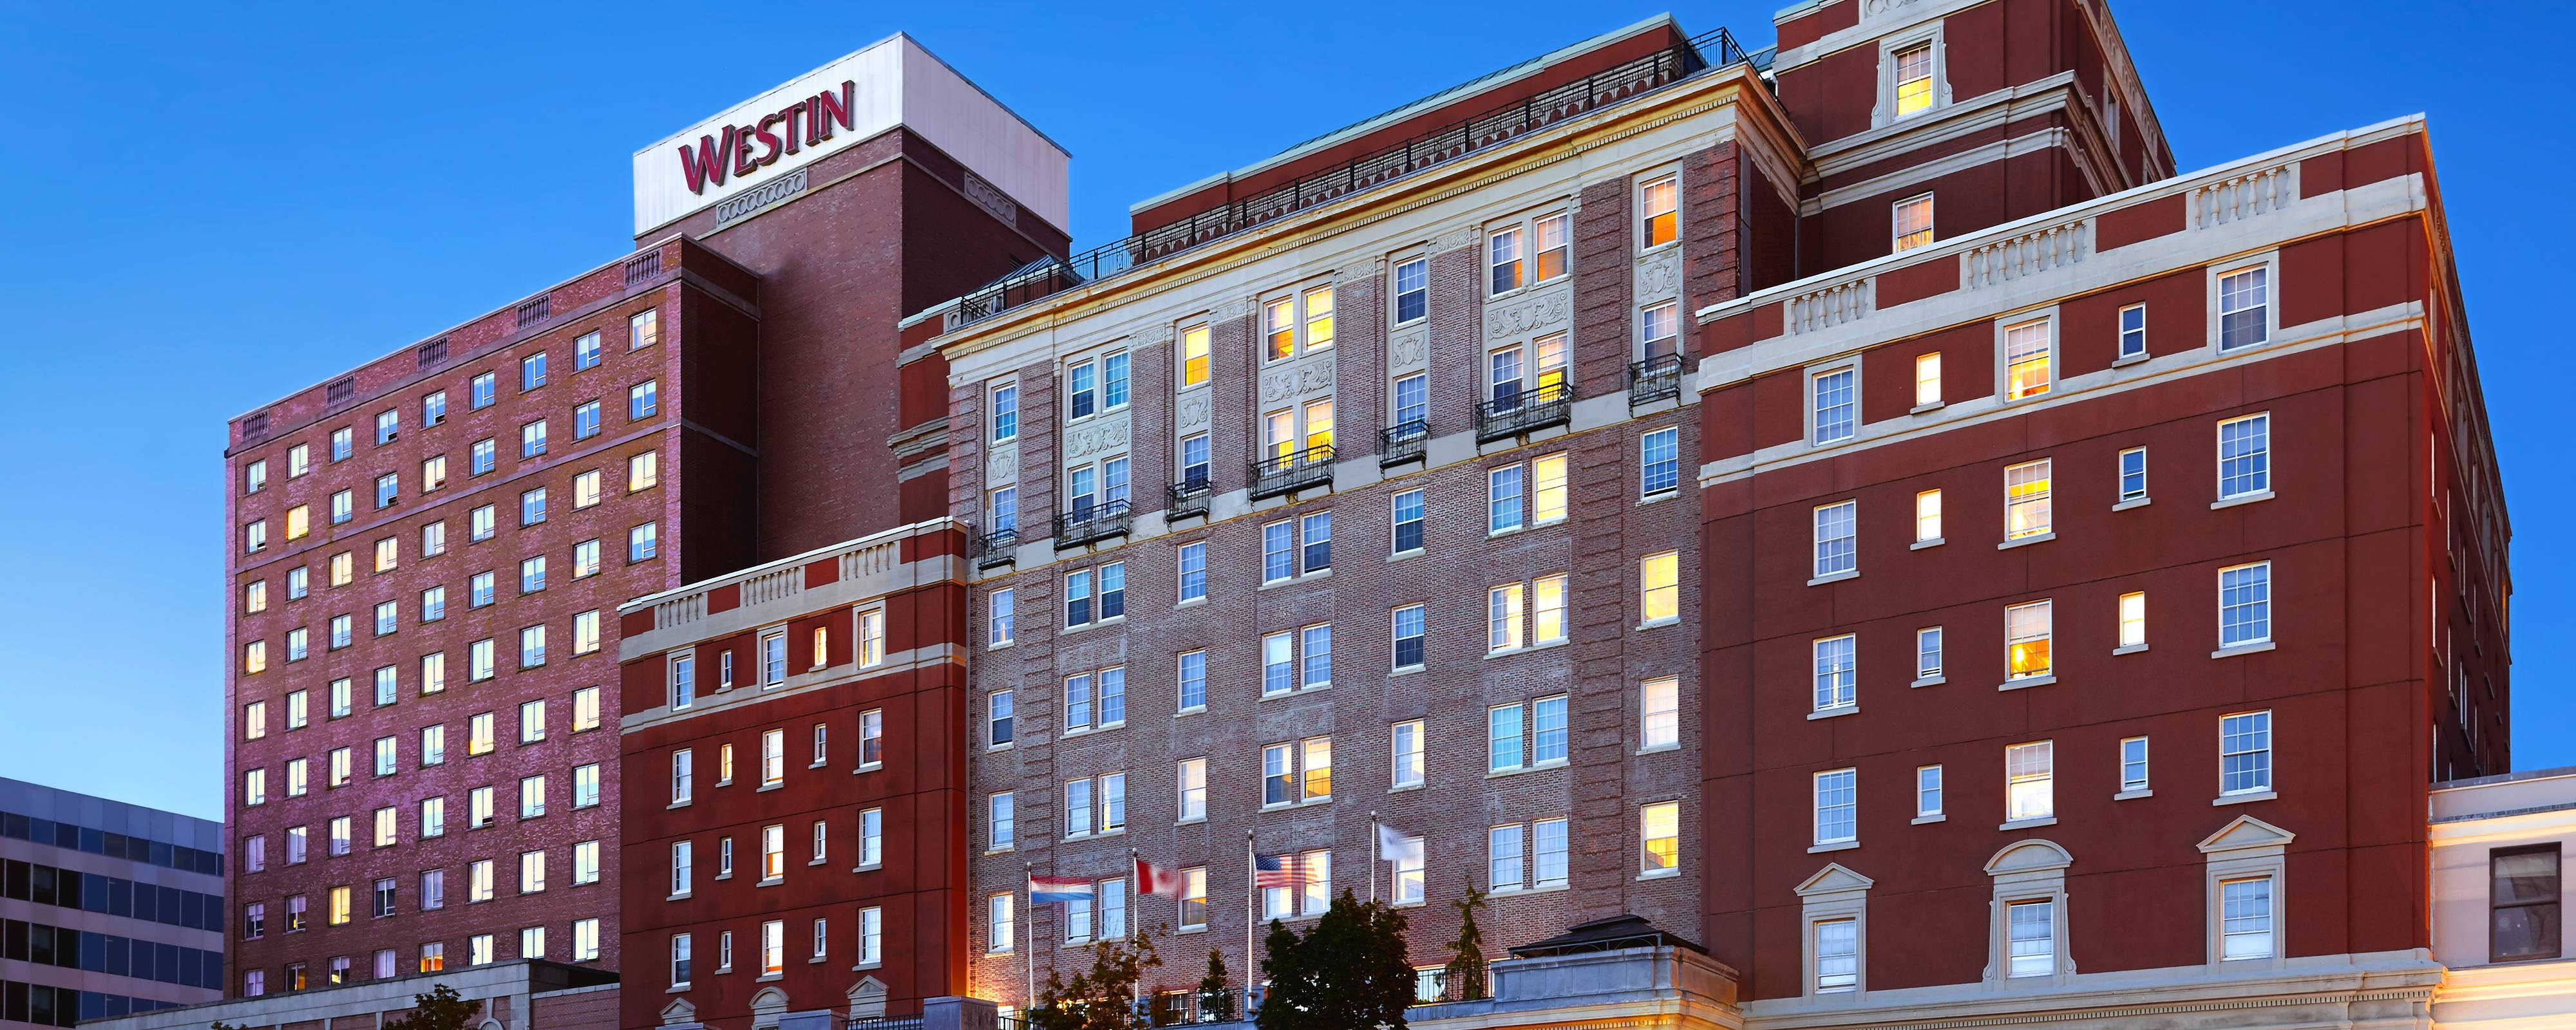 The Westin Nova Scotia Combines Classic Elegance